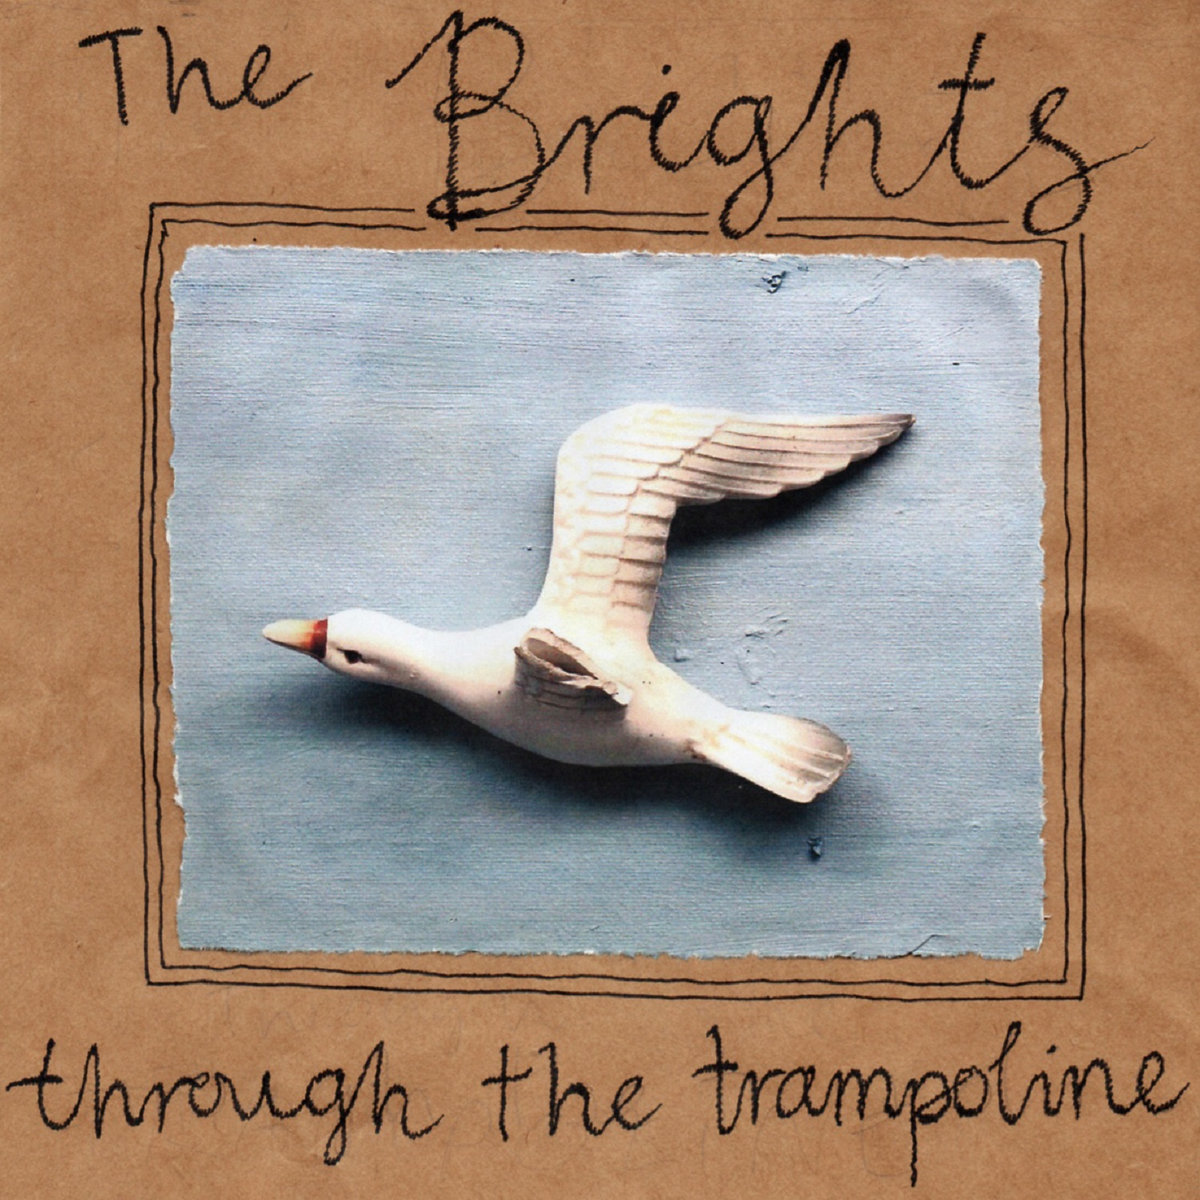 Through the Trampoline | The Brights